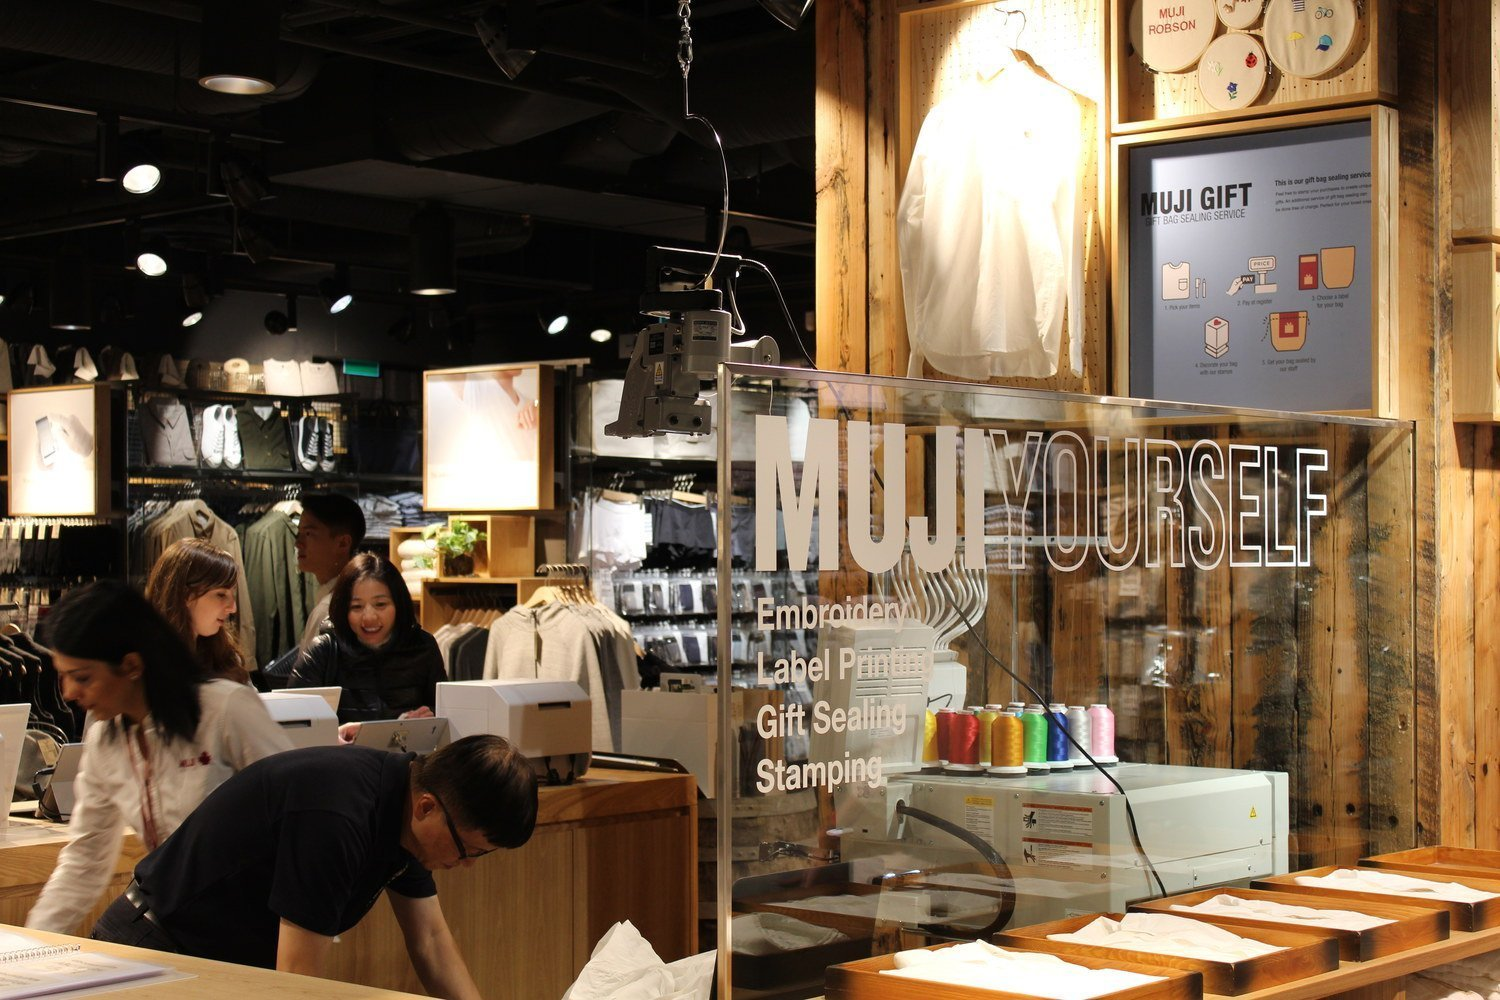 MUJI YOURSELF customization counter